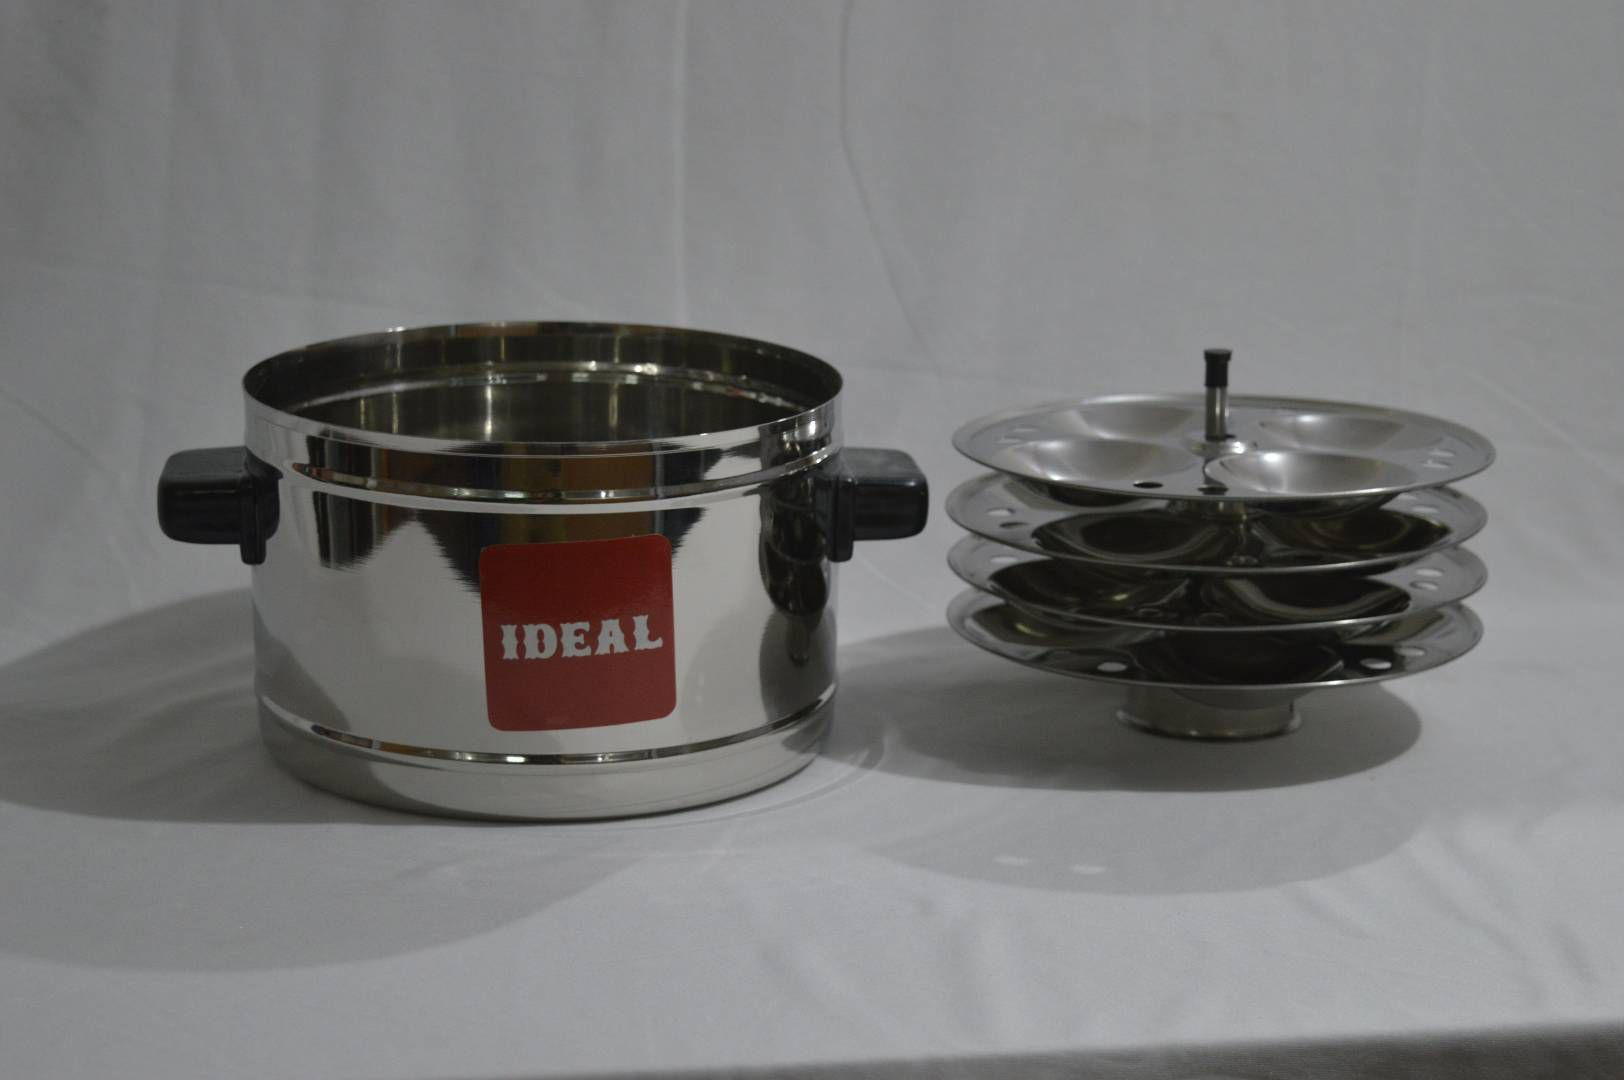 bd88d4ce8 Ideal Aluminium Idli Cooker  Buy Online at Best Price in India - Snapdeal